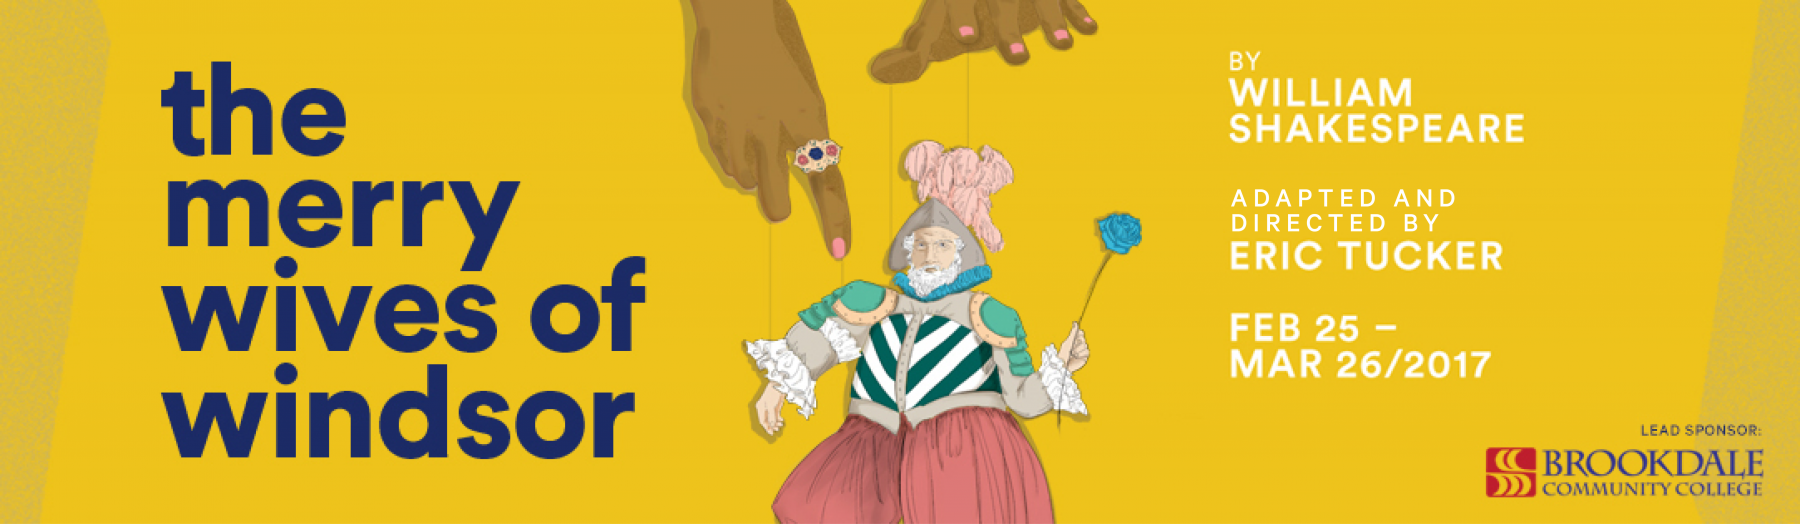 Merry Wives of Windsor Web Banner